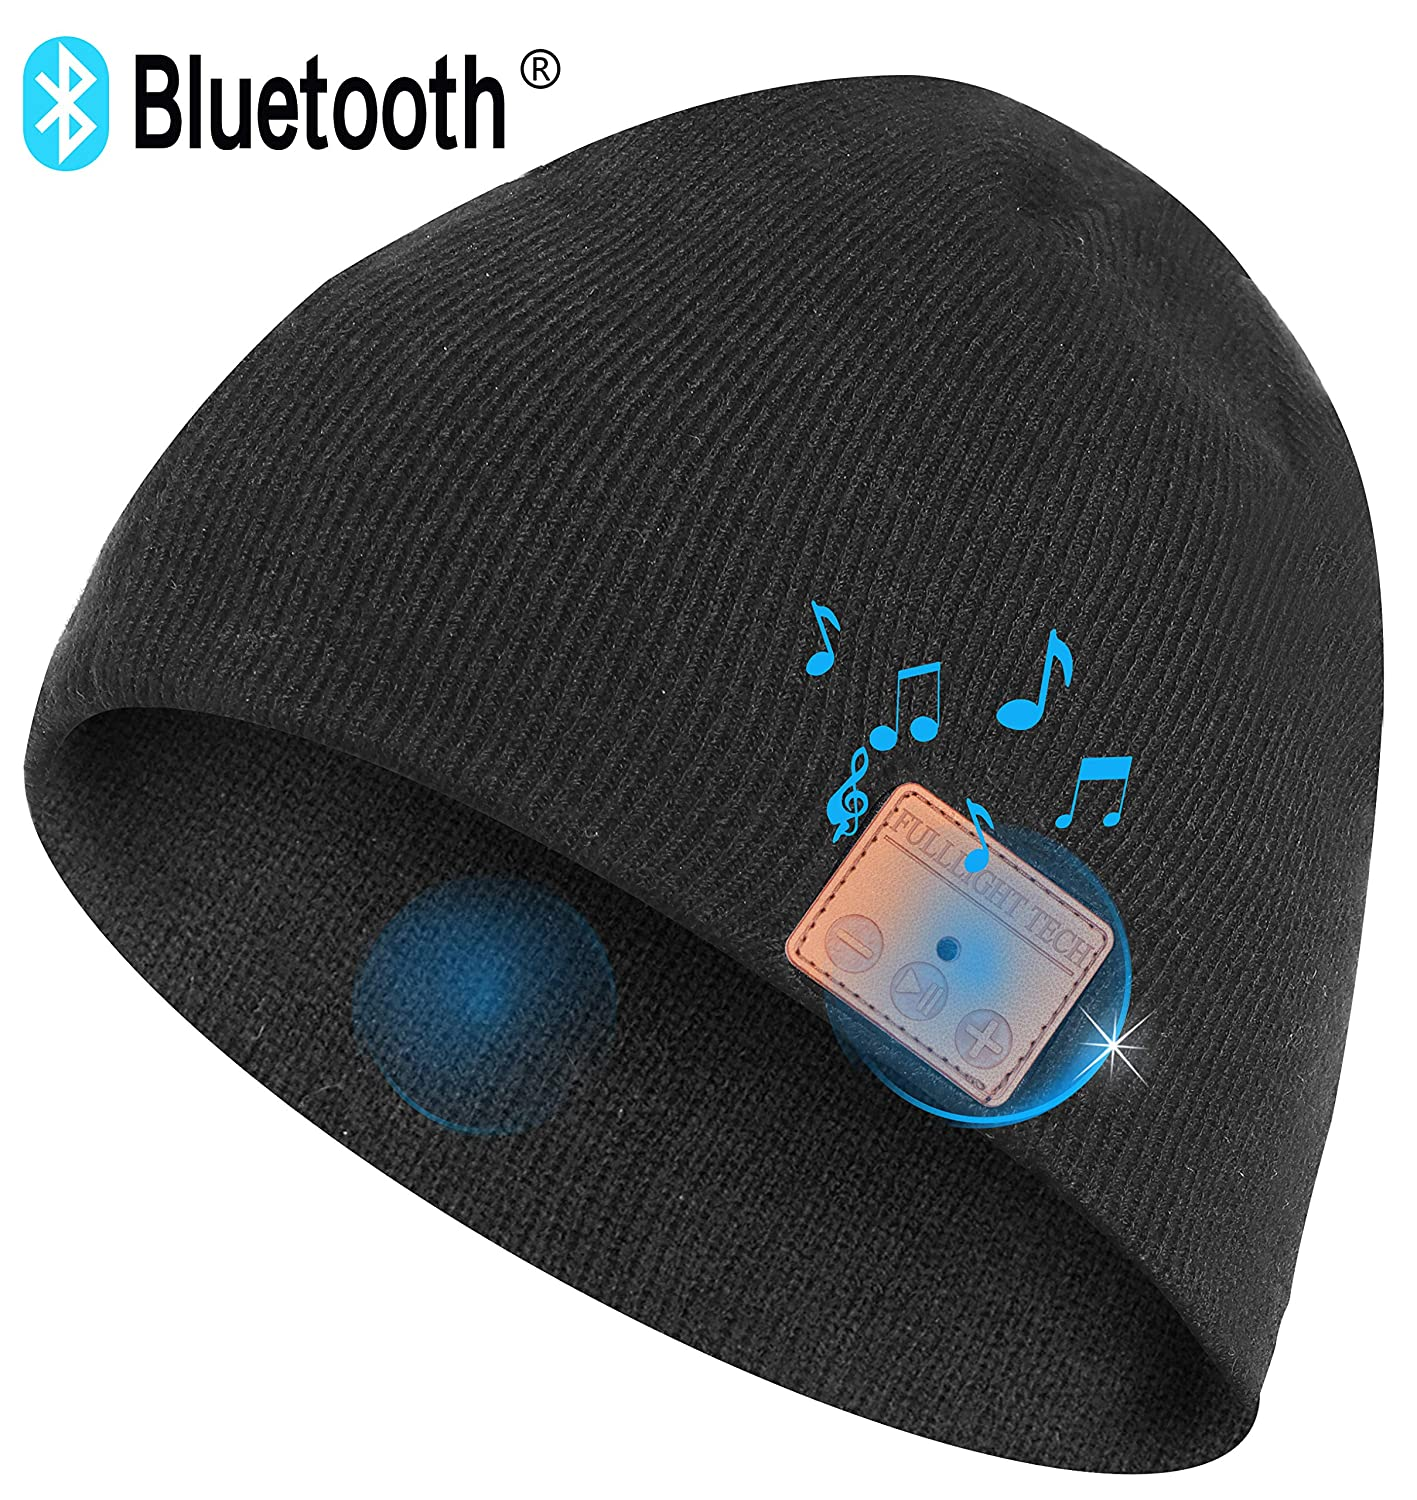 Gifts-For-19-Year-Old-Boy-Bluetooth-Beanie